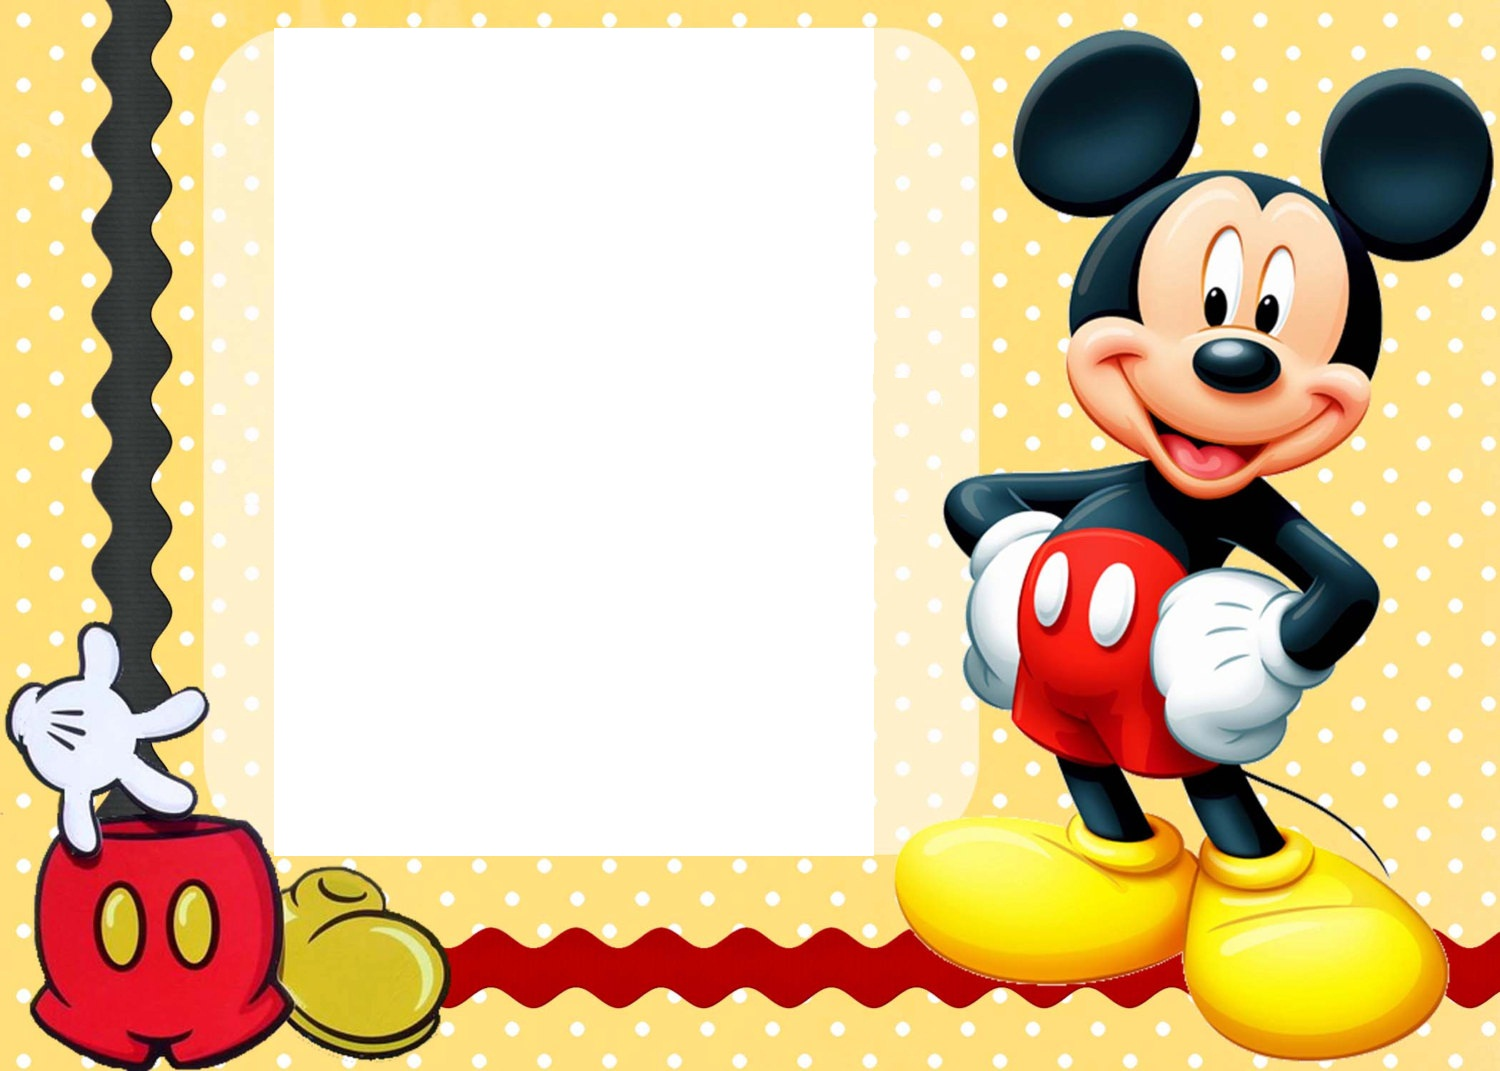 Mickey Mouse Clubhouse Invitation Template was amazing invitation sample